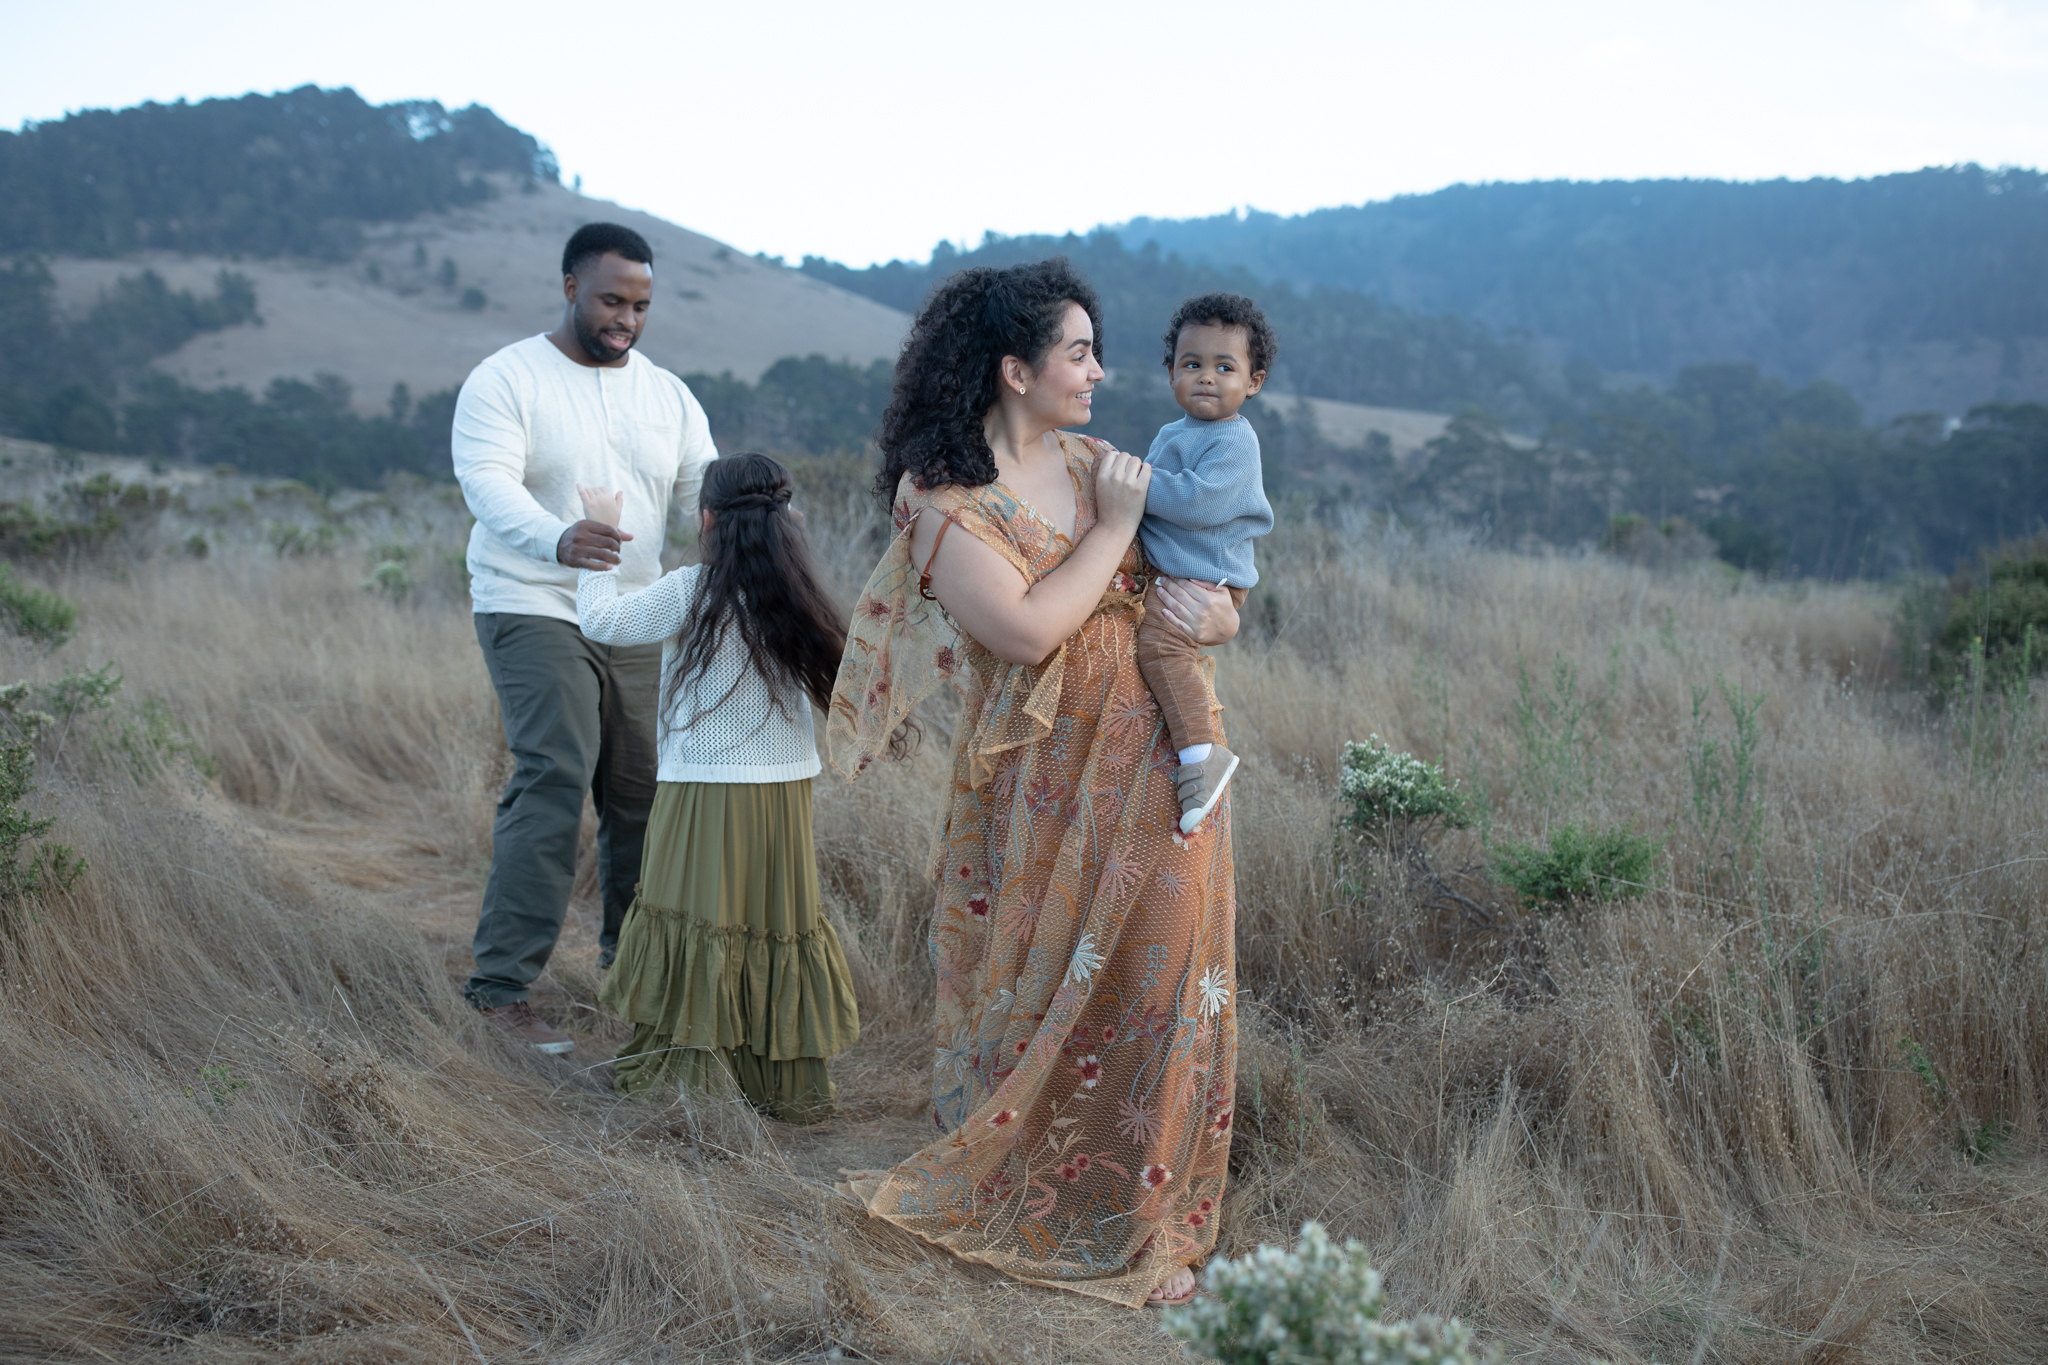 An unedited picture of a family with two kids that walk through a field.